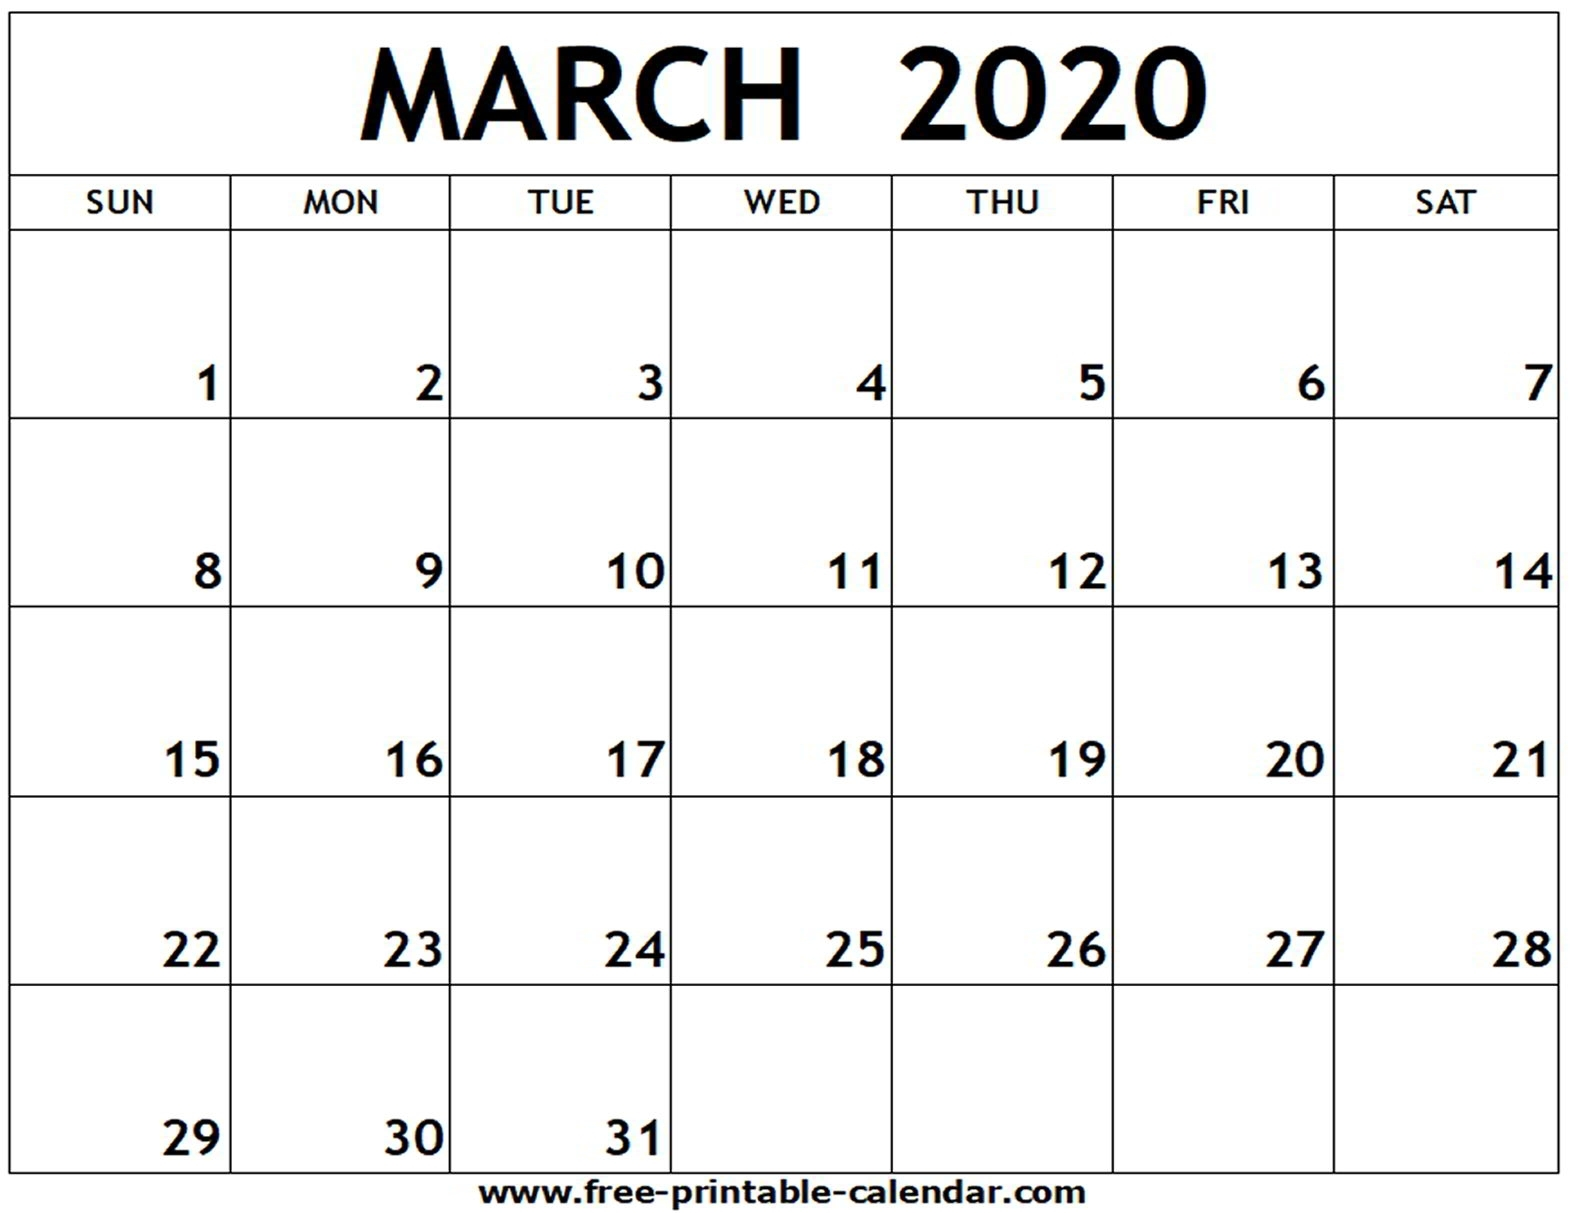 Free Printable Calendar January February March 2020